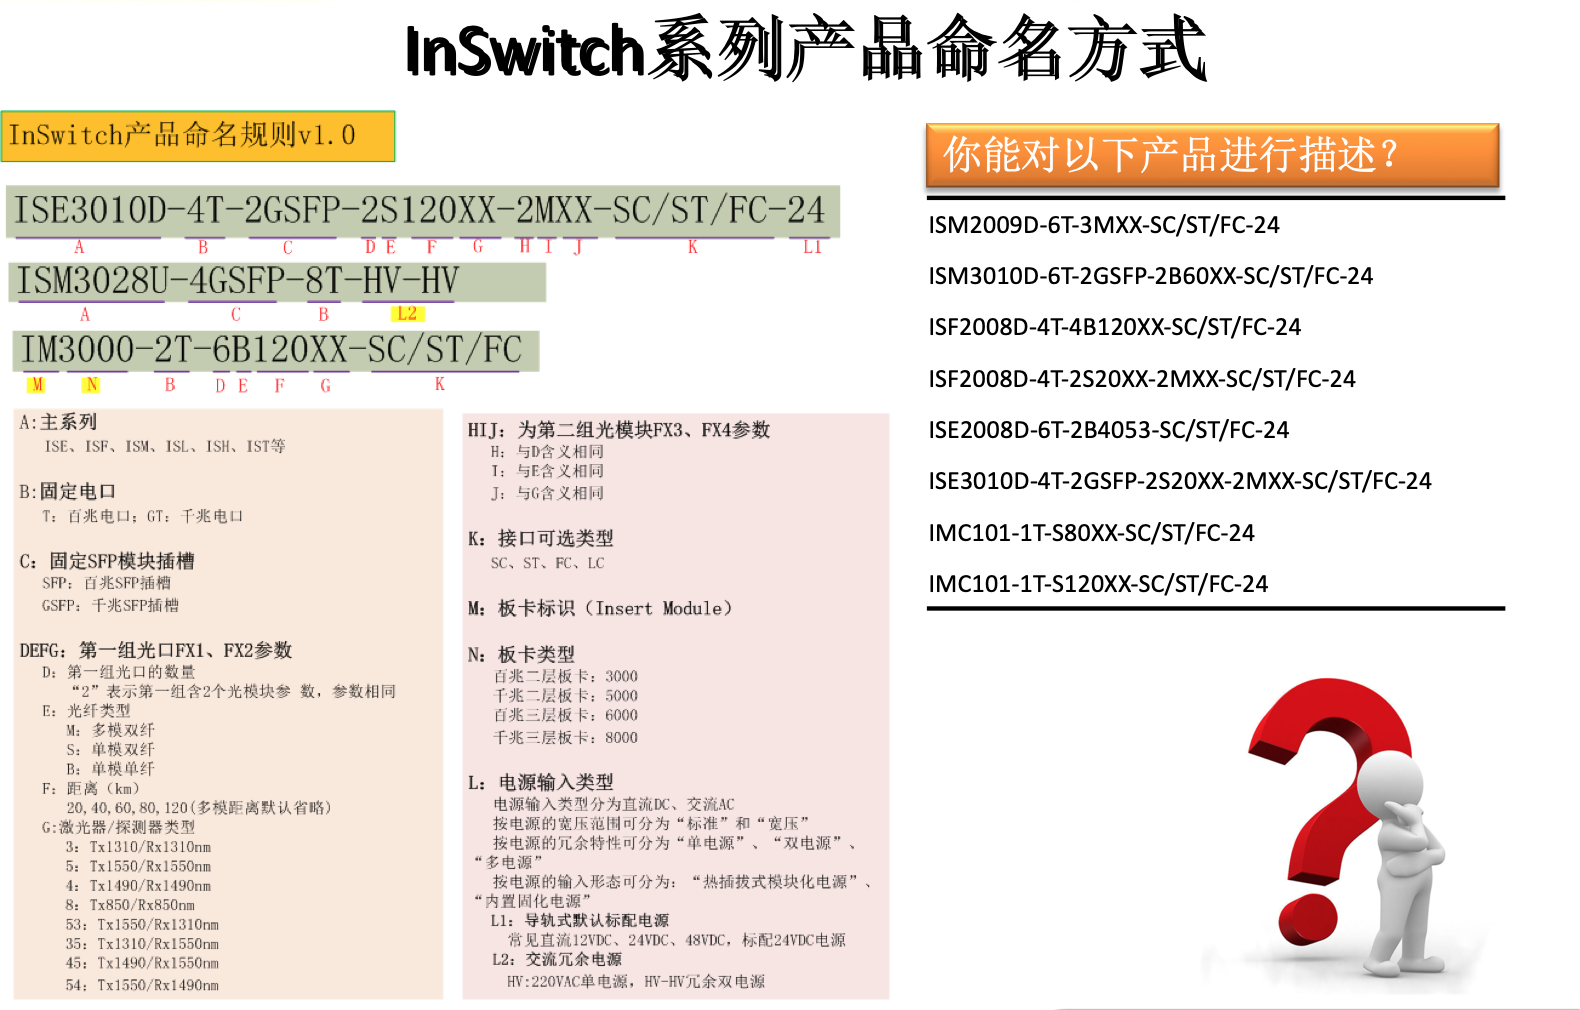 InSwitch命名规则.png